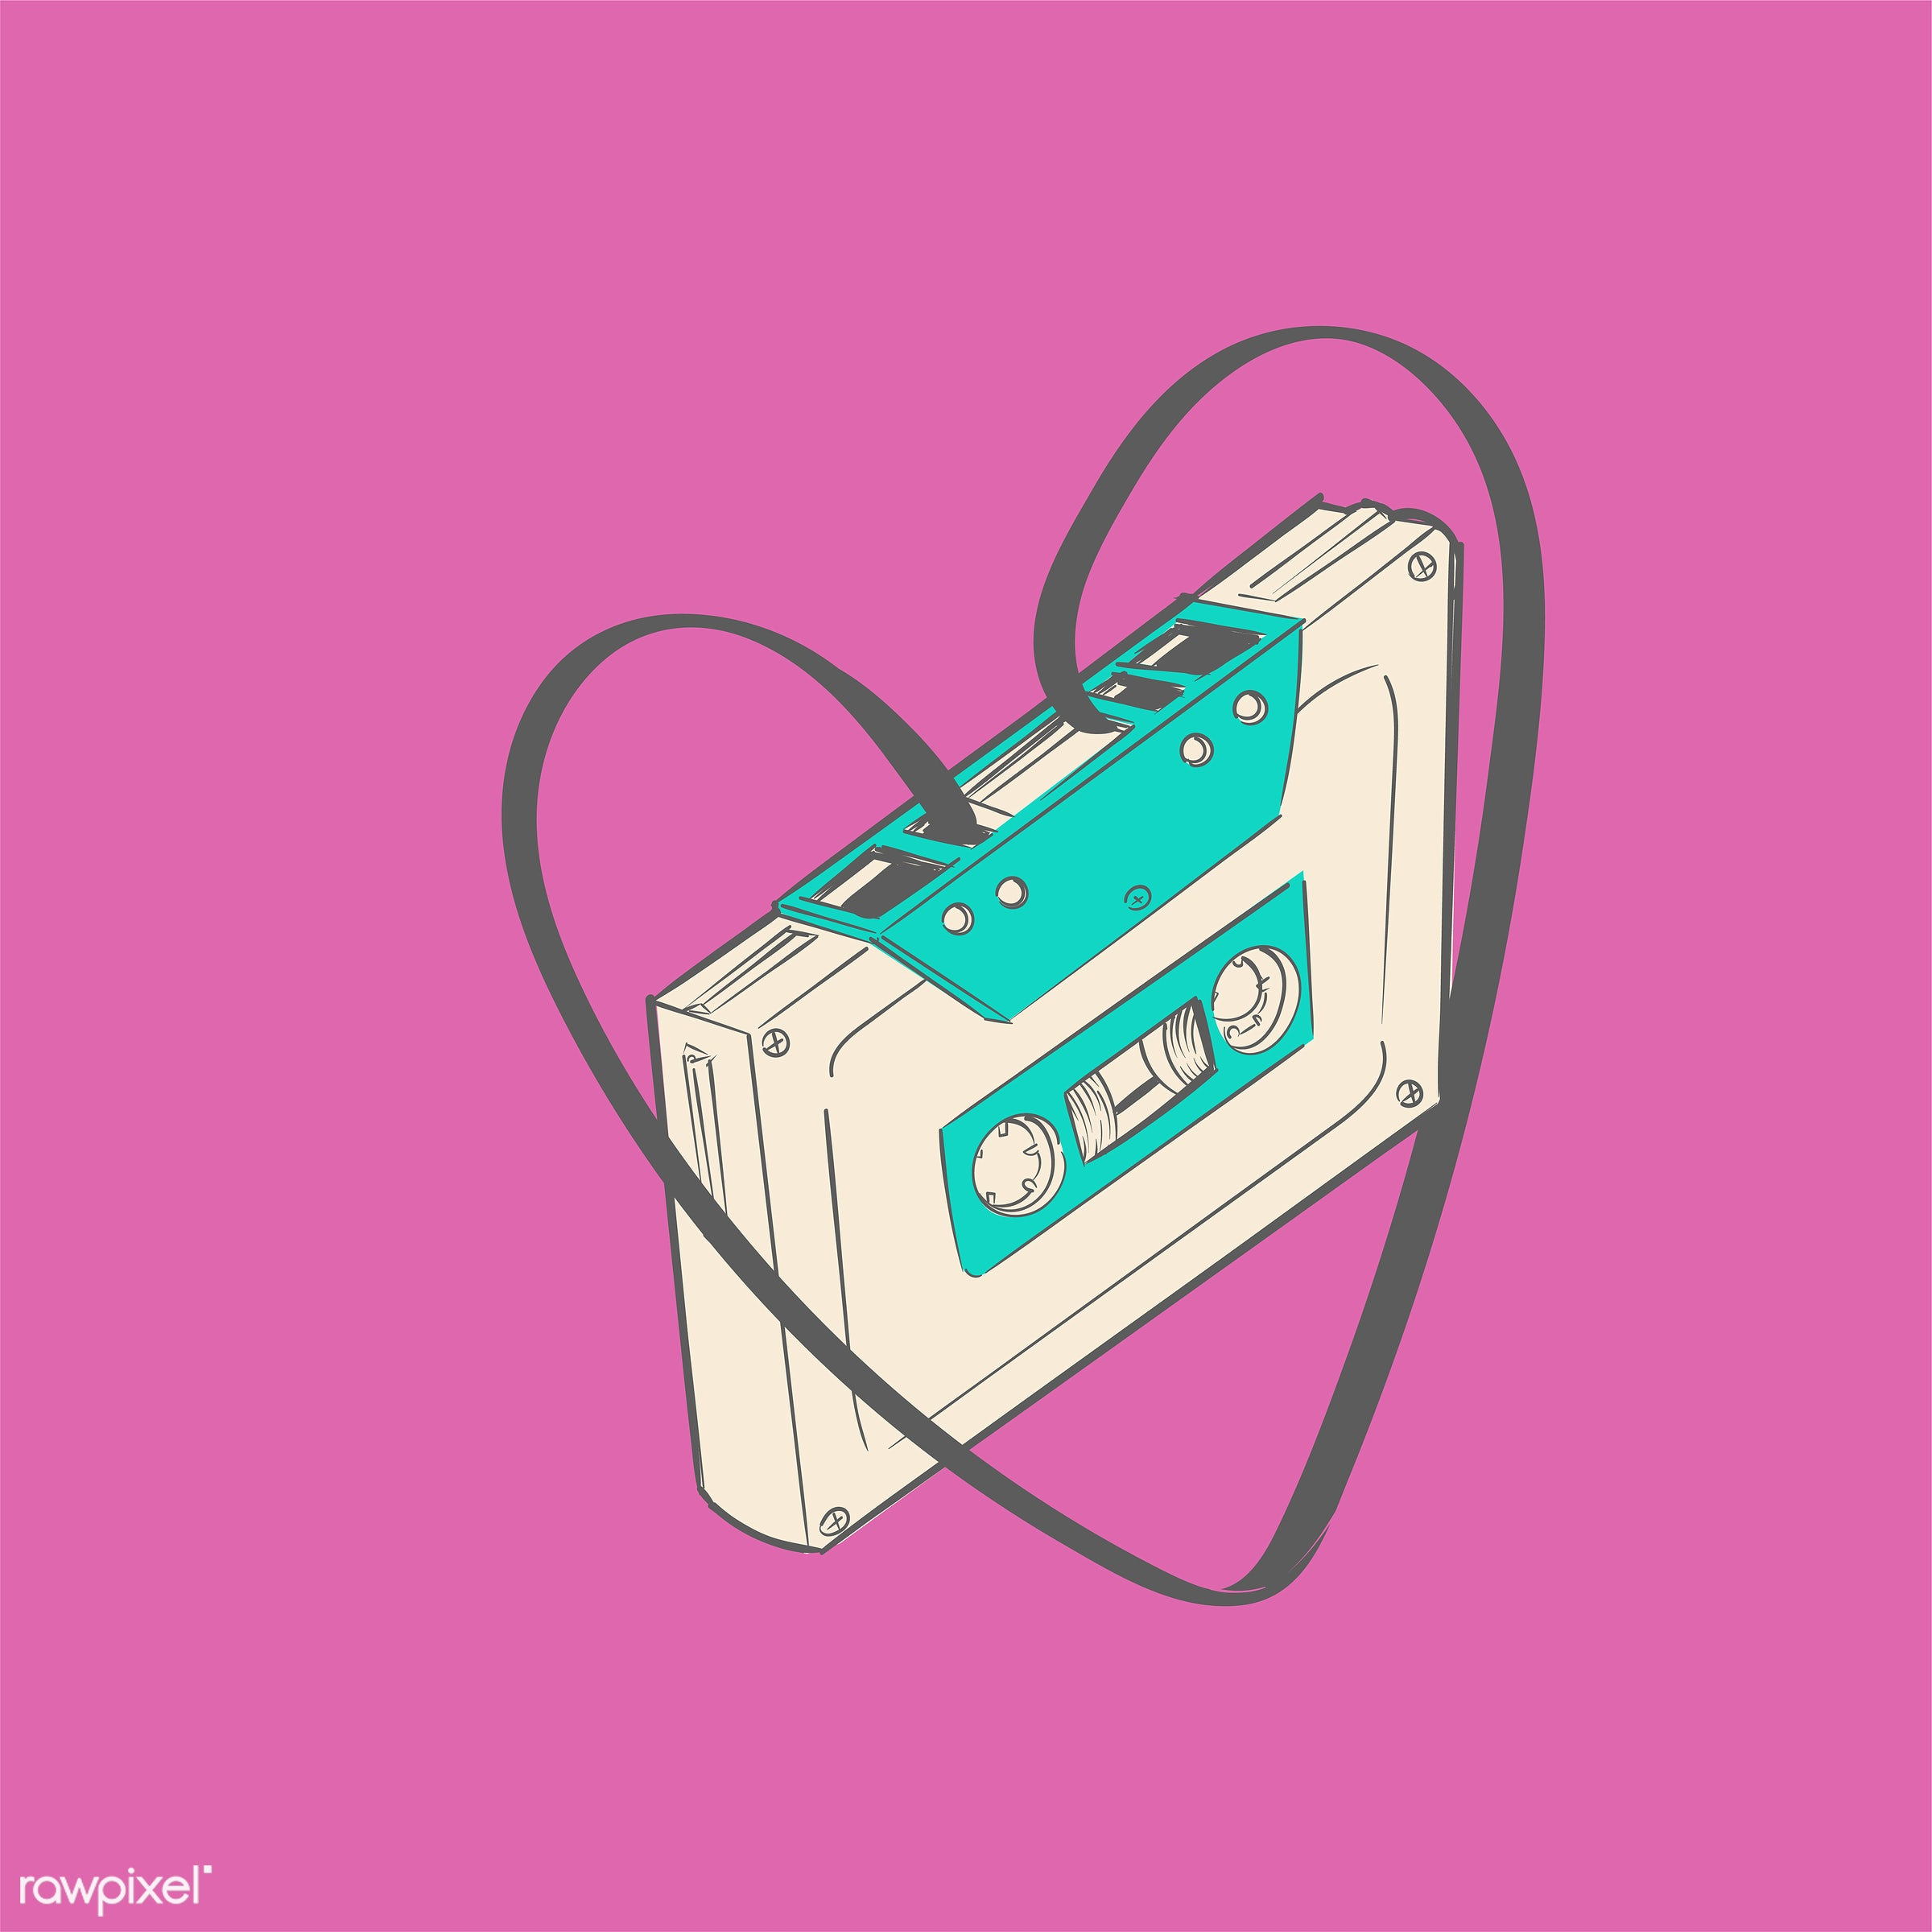 Hand drawing illustration of music entertainment concept - cassette, music, artwork, design, draw, drawing, drawn,...